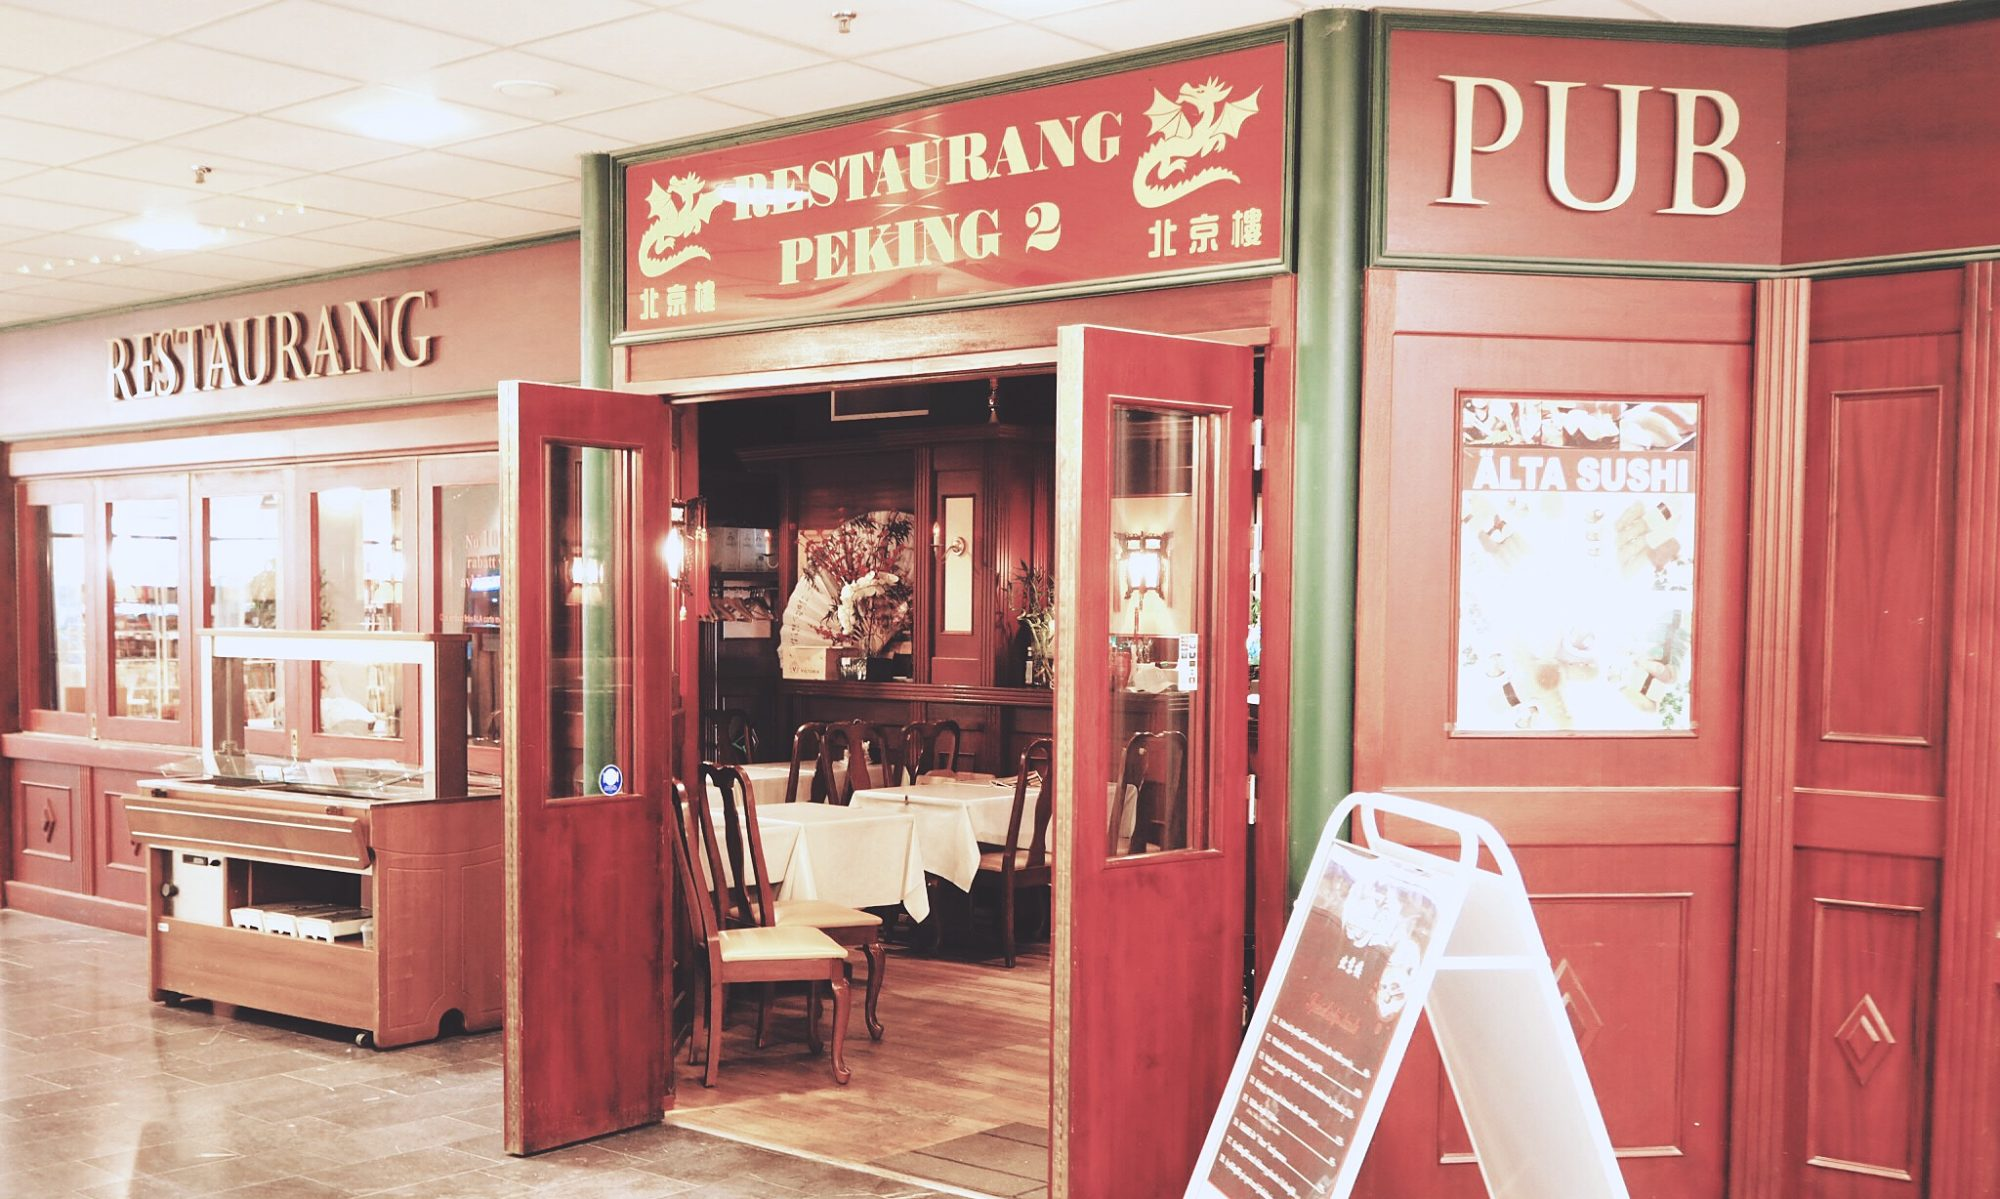 Restaurang peking 2